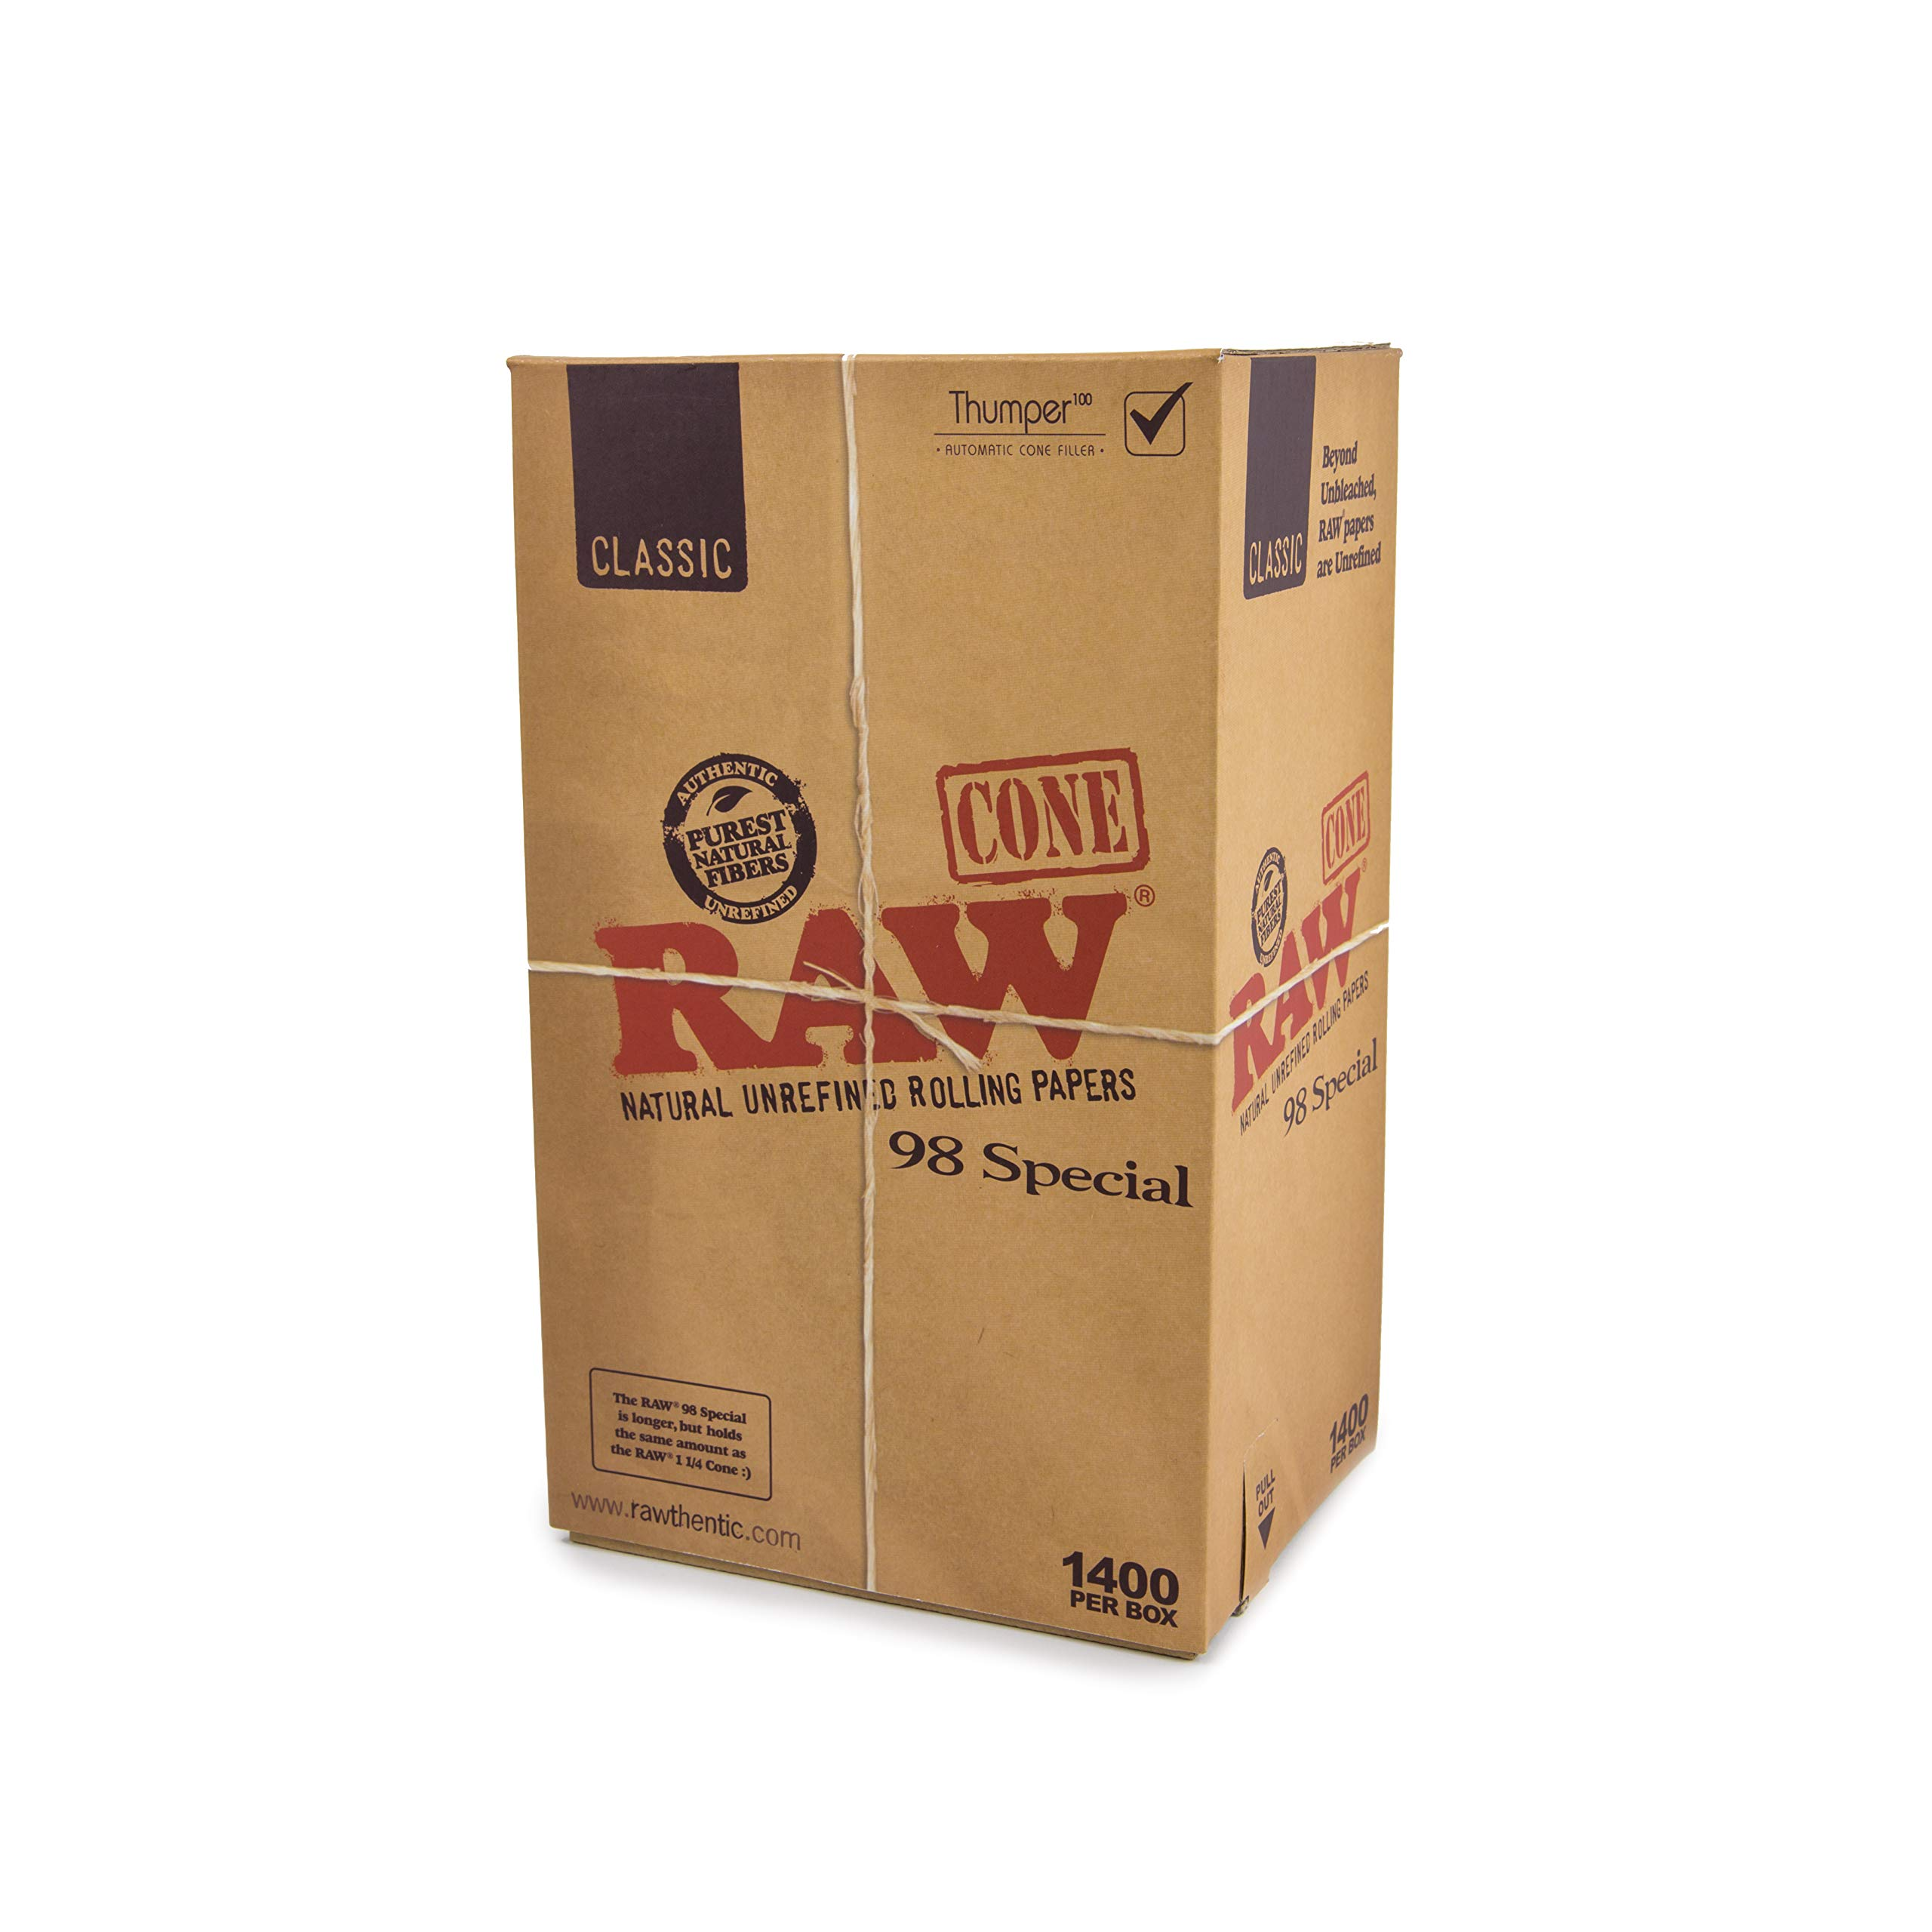 RAW Classic Natural Unrefined Rolling Papers - Pre Rolled Cones - 98 Special Size - 1400 Cones Per Box by RAW